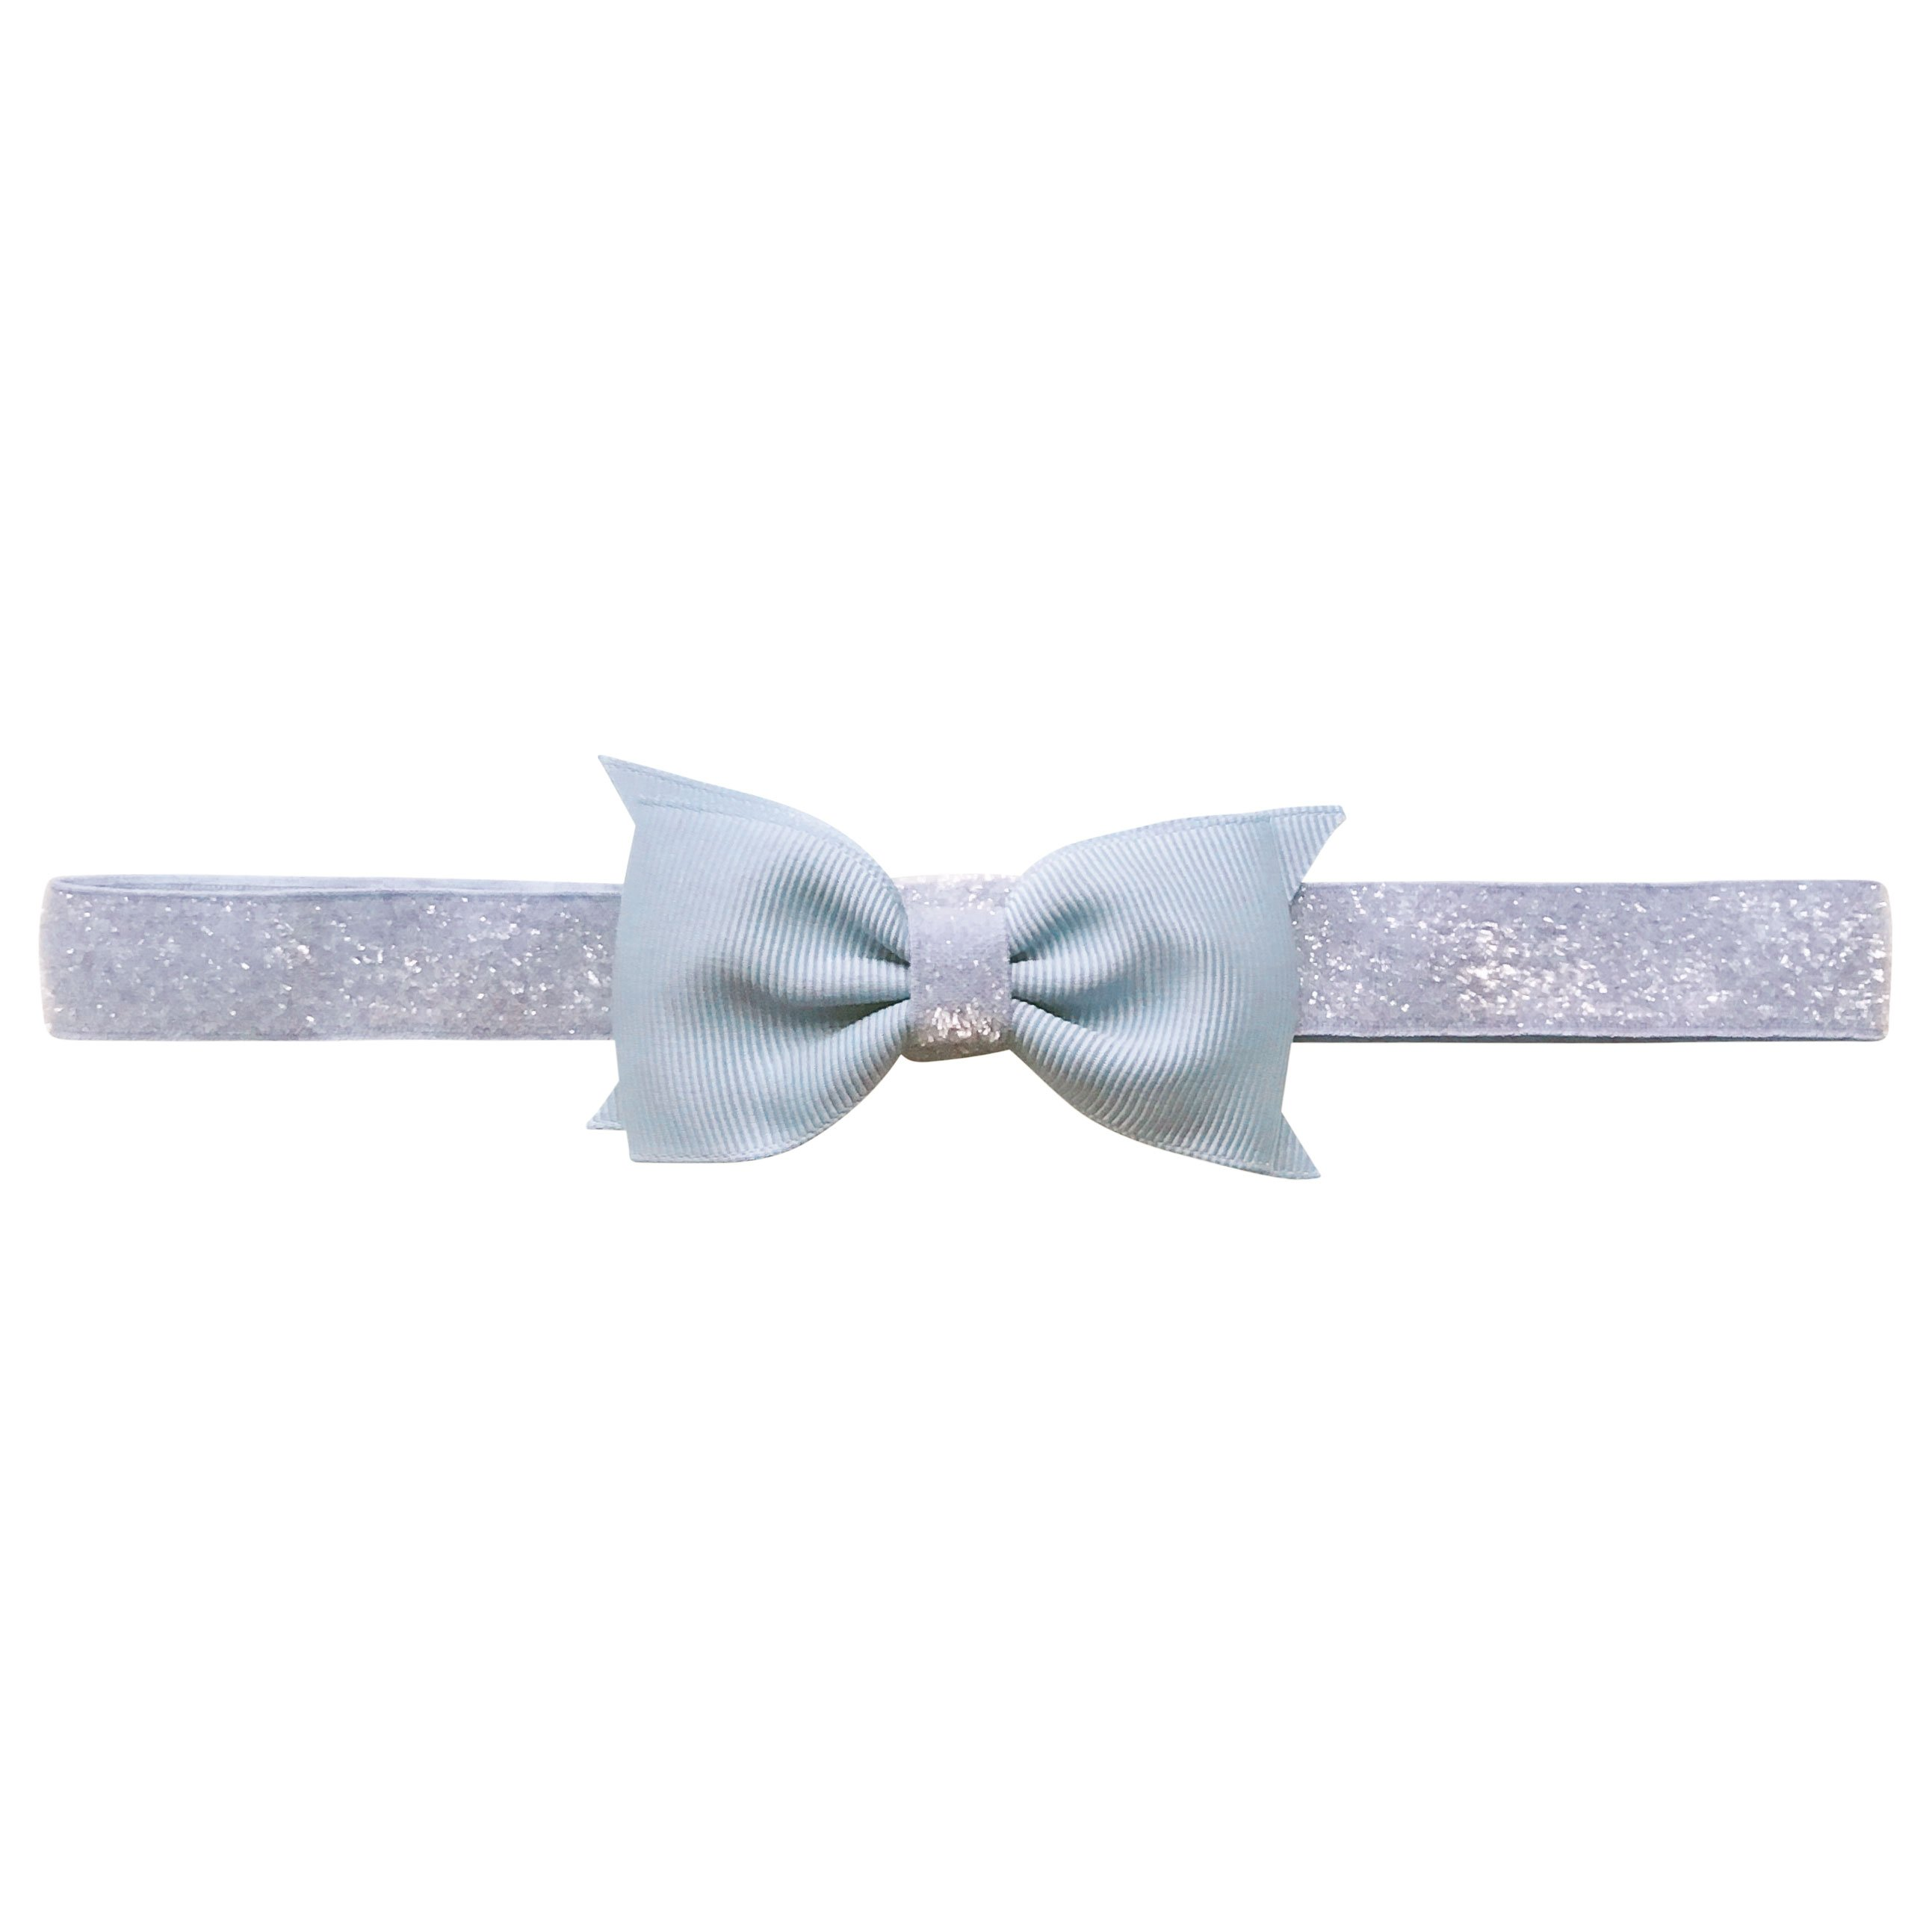 Image of   Double Bowtie Milledeux bow - elastic hairband - bluebell colored glitter